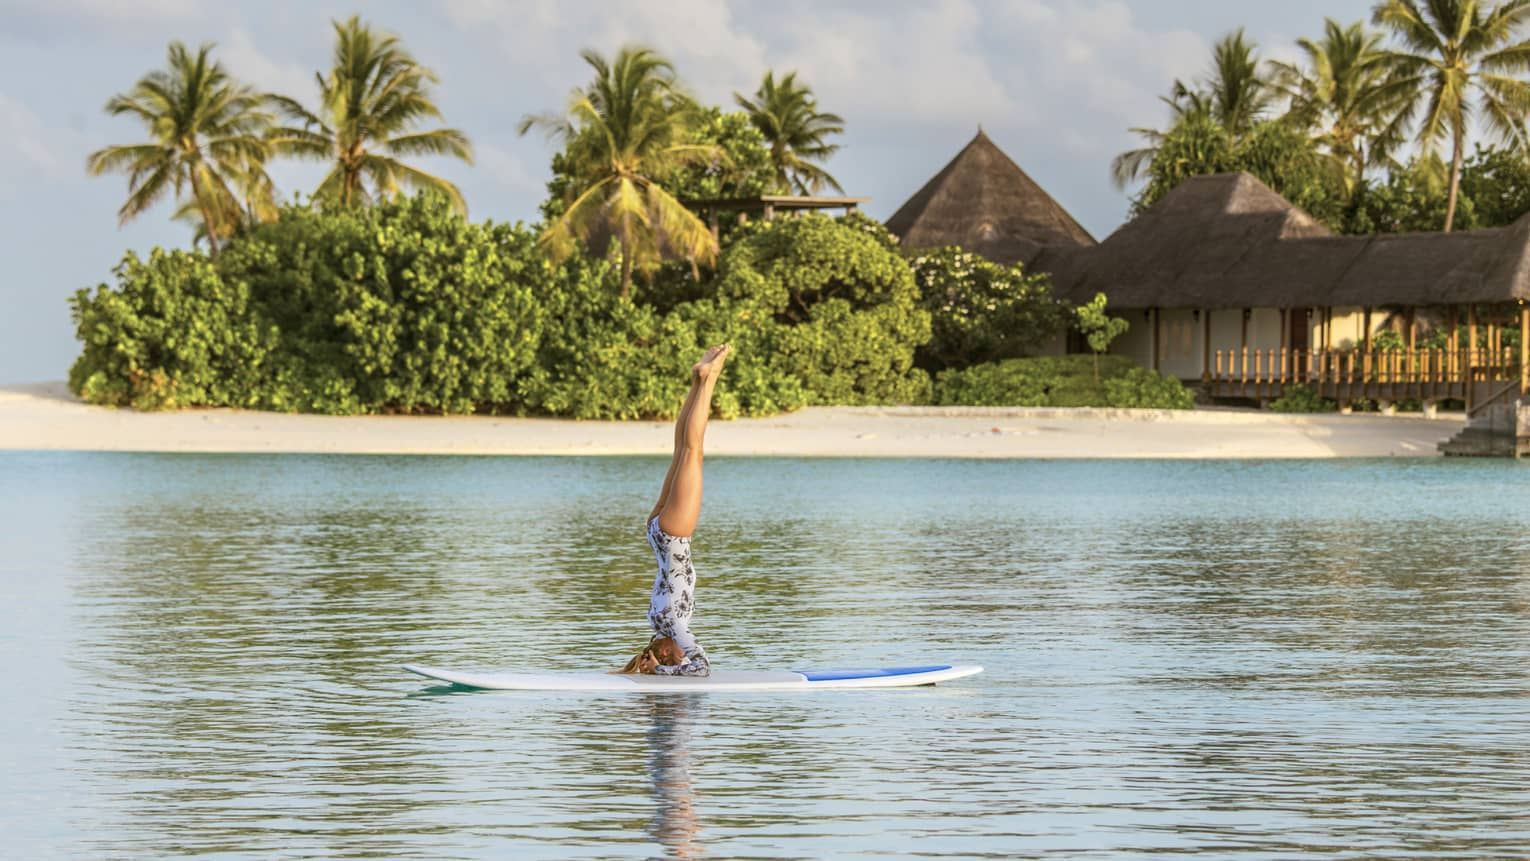 Woman balances on arms during stand-up paddleboard yoga session on Indian Ocean